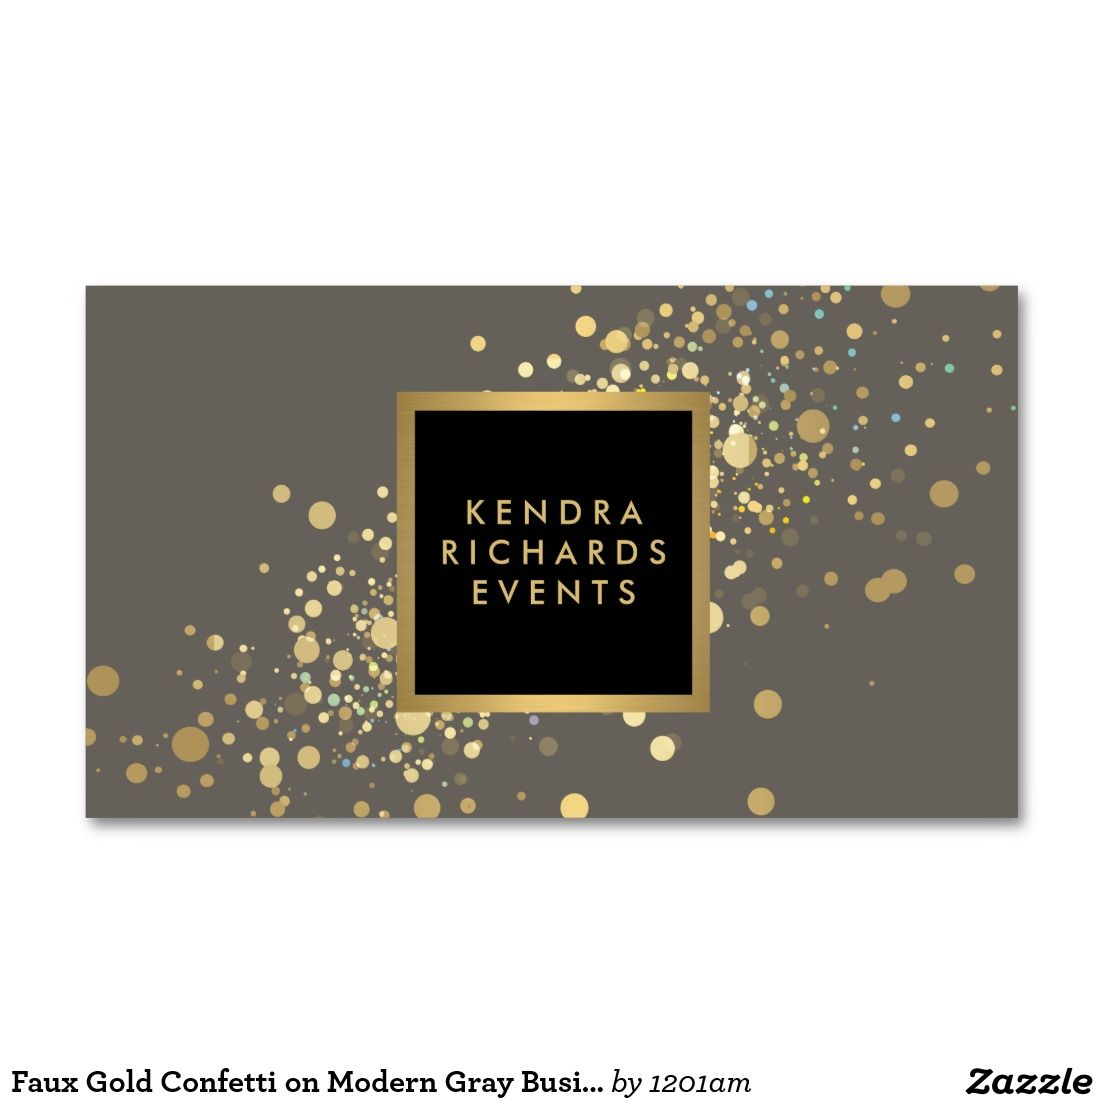 Faux gold confetti on modern gray business card cartes de visita faux gold confetti on modern gray business card reheart Choice Image